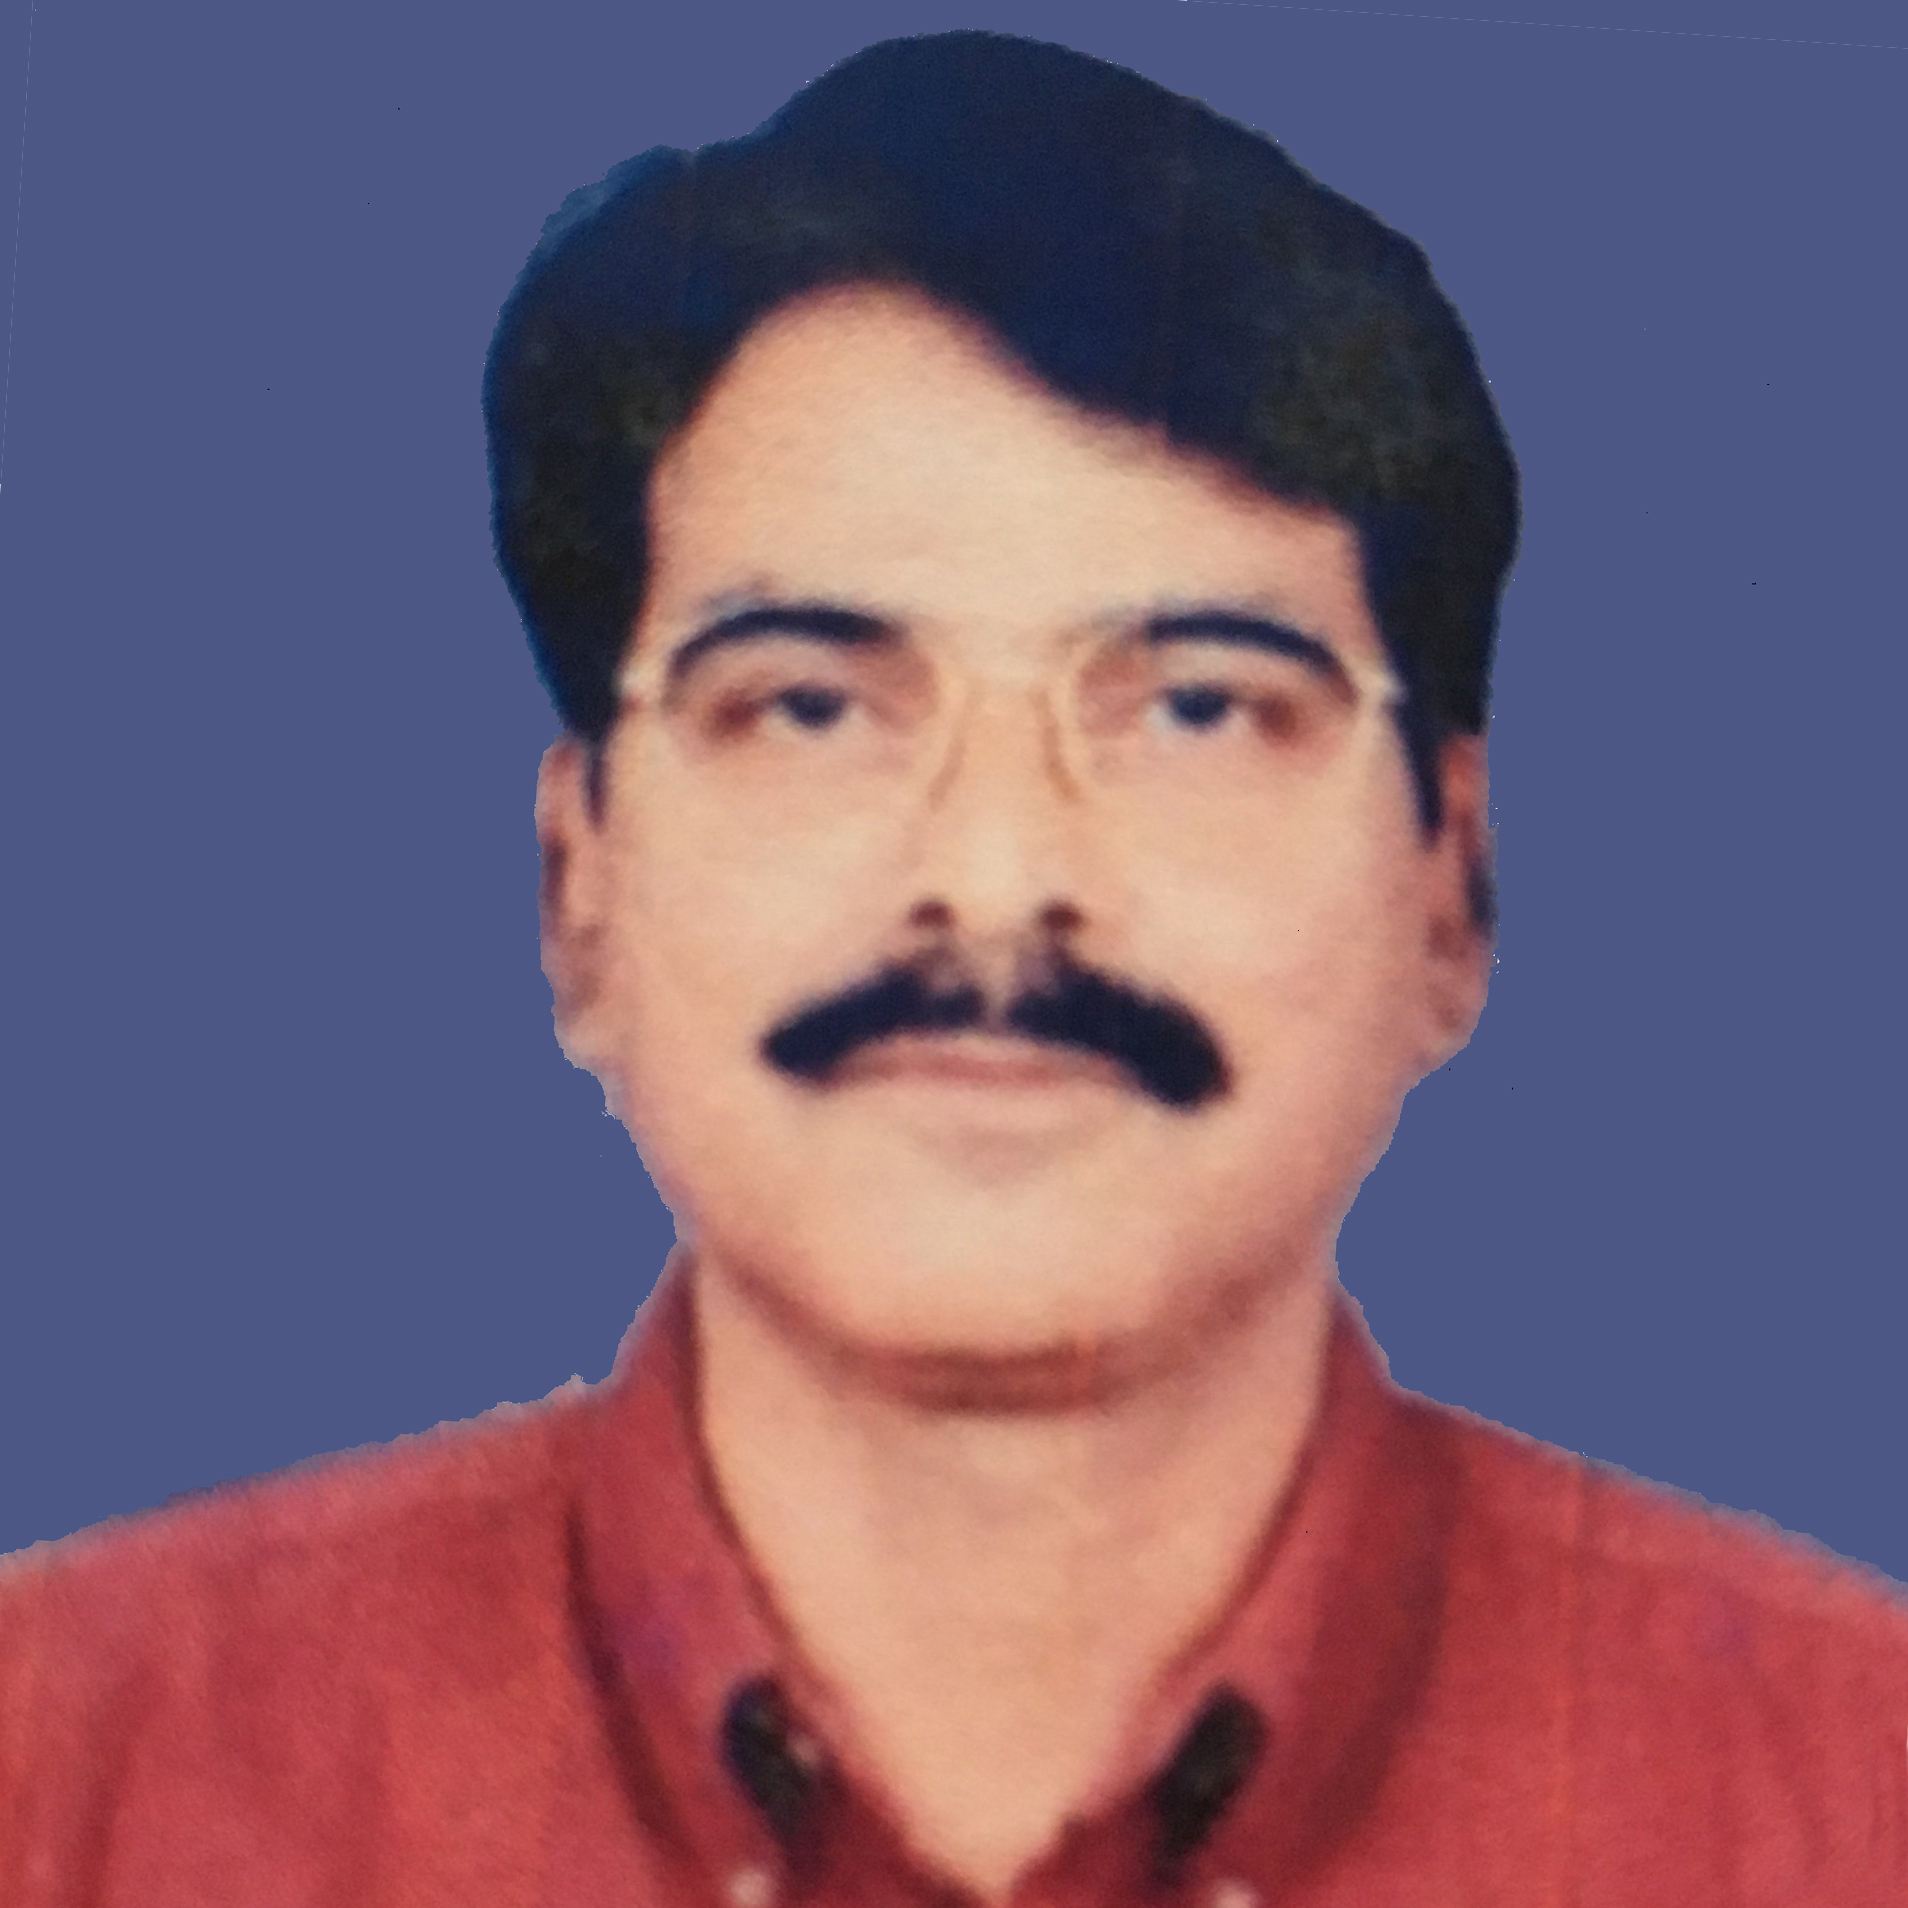 Mr. Umesh Sakhavalkar